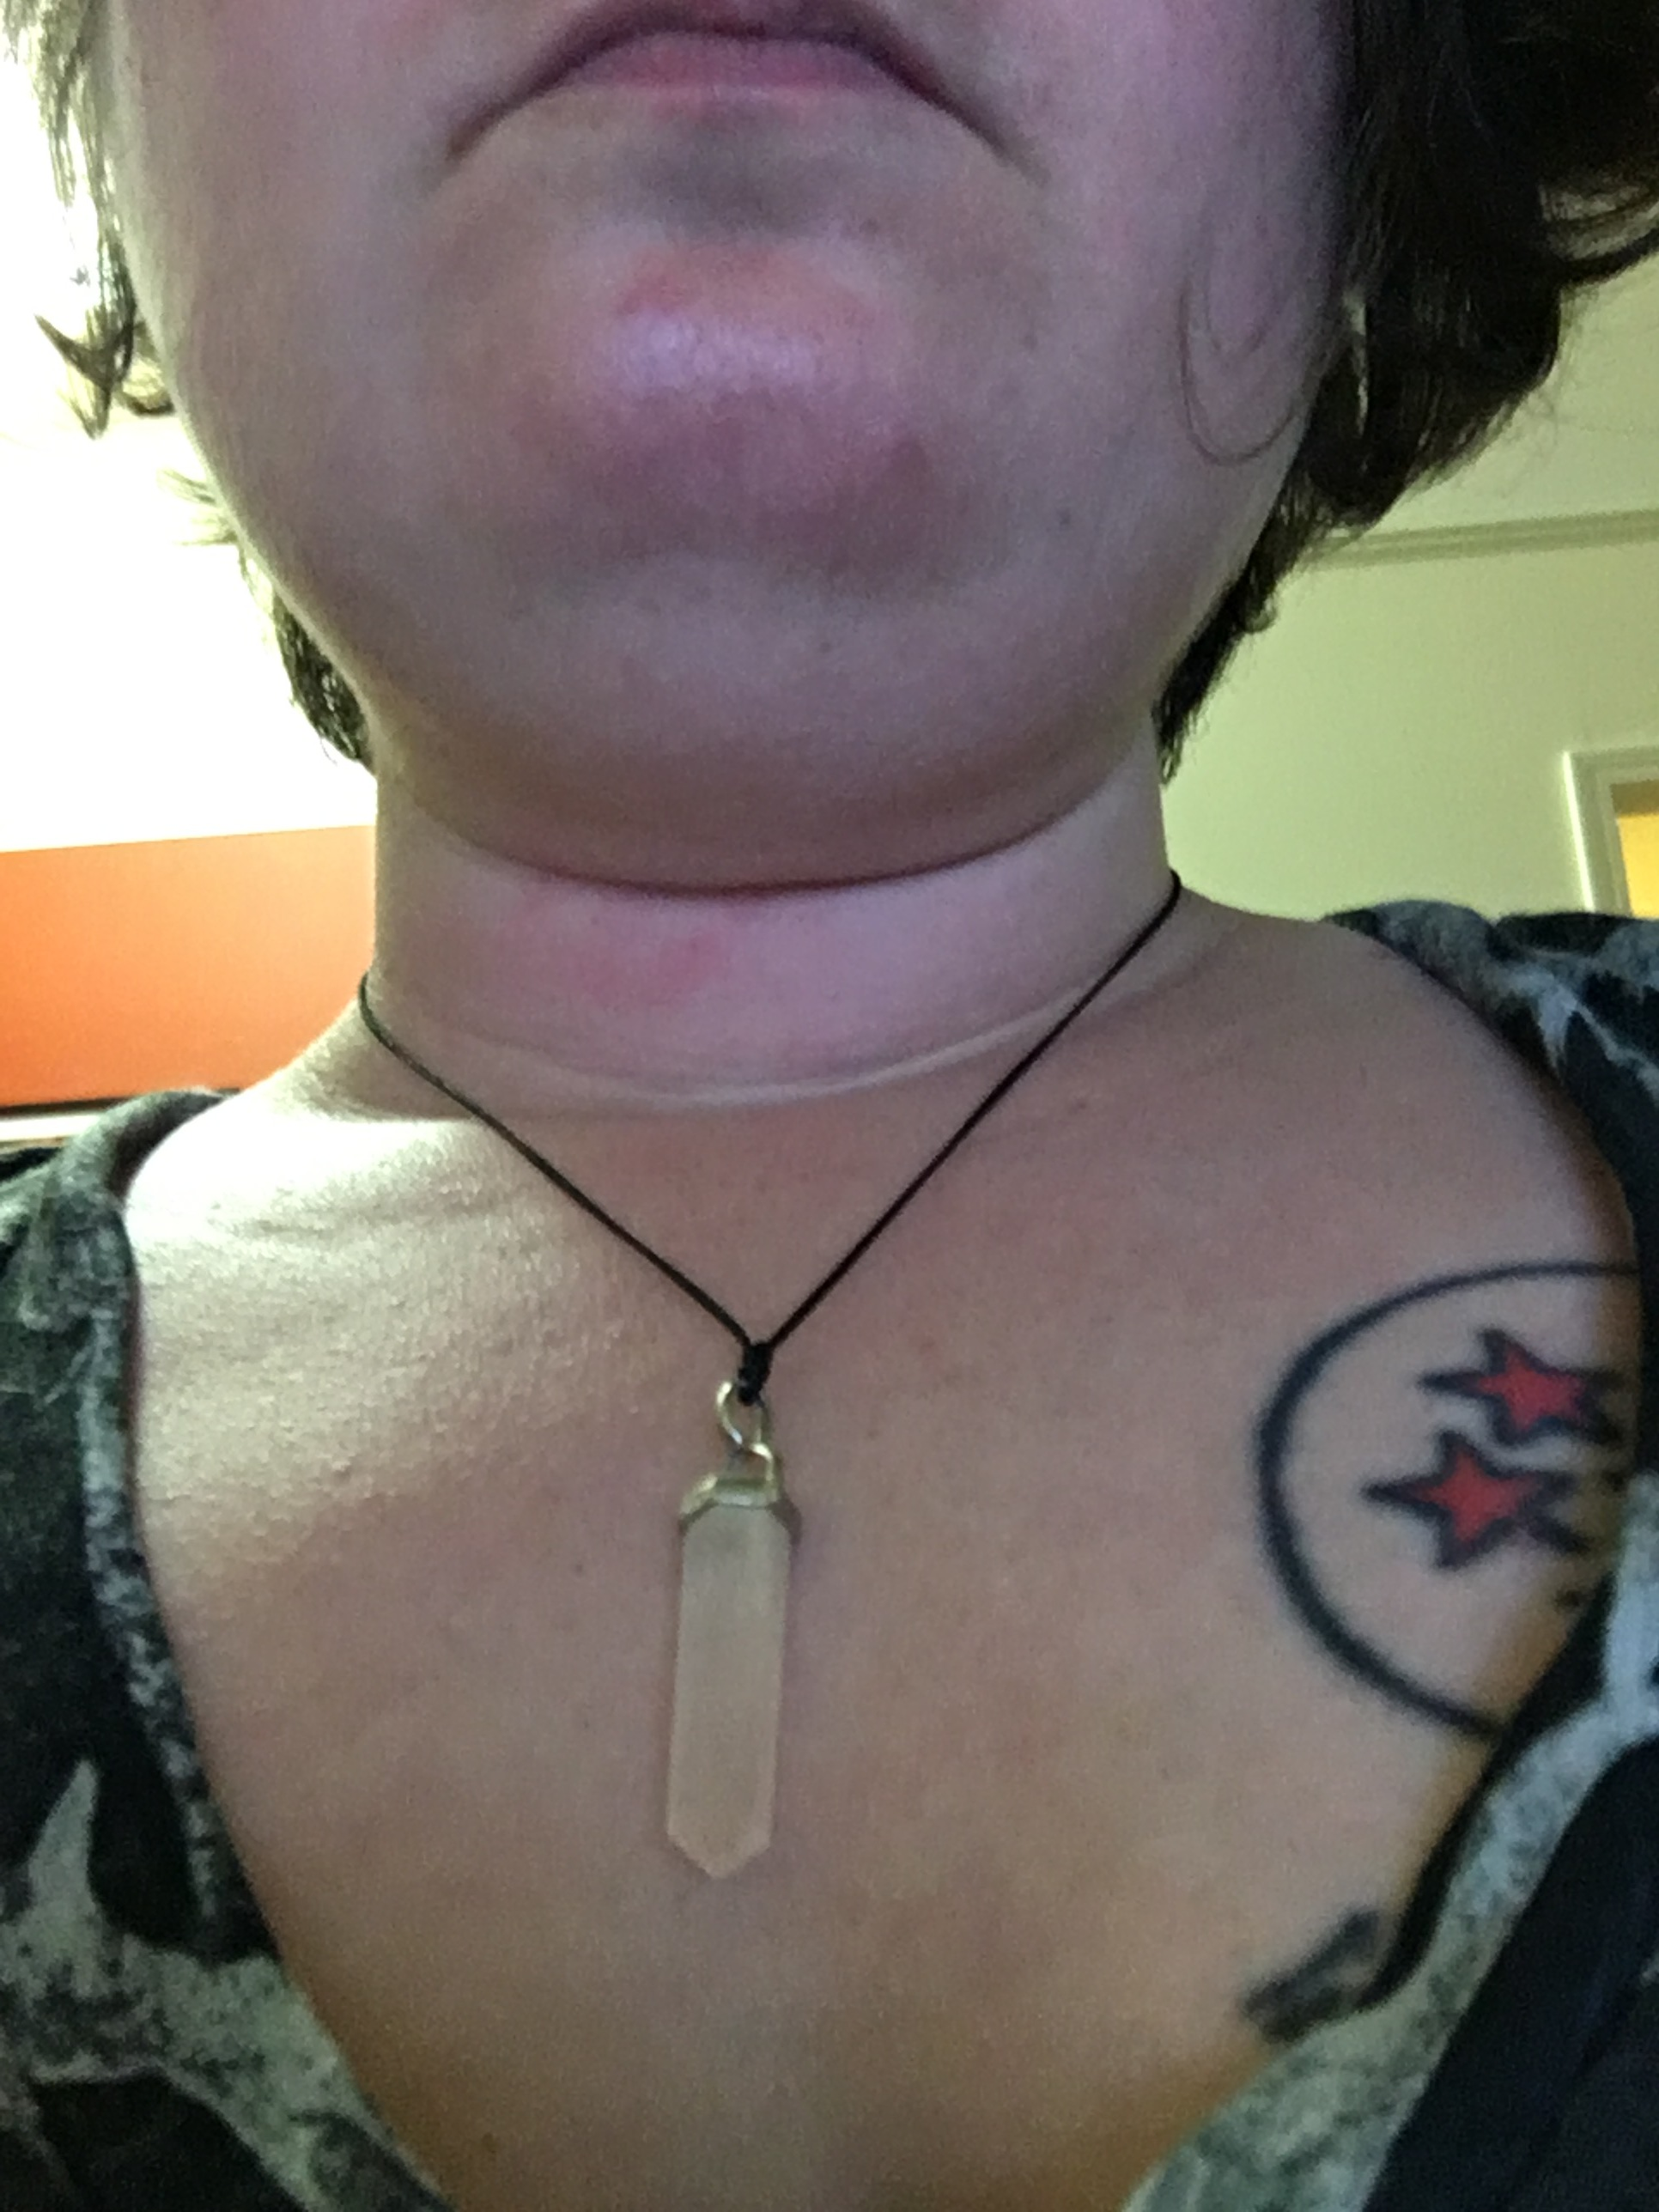 The necklace in question.